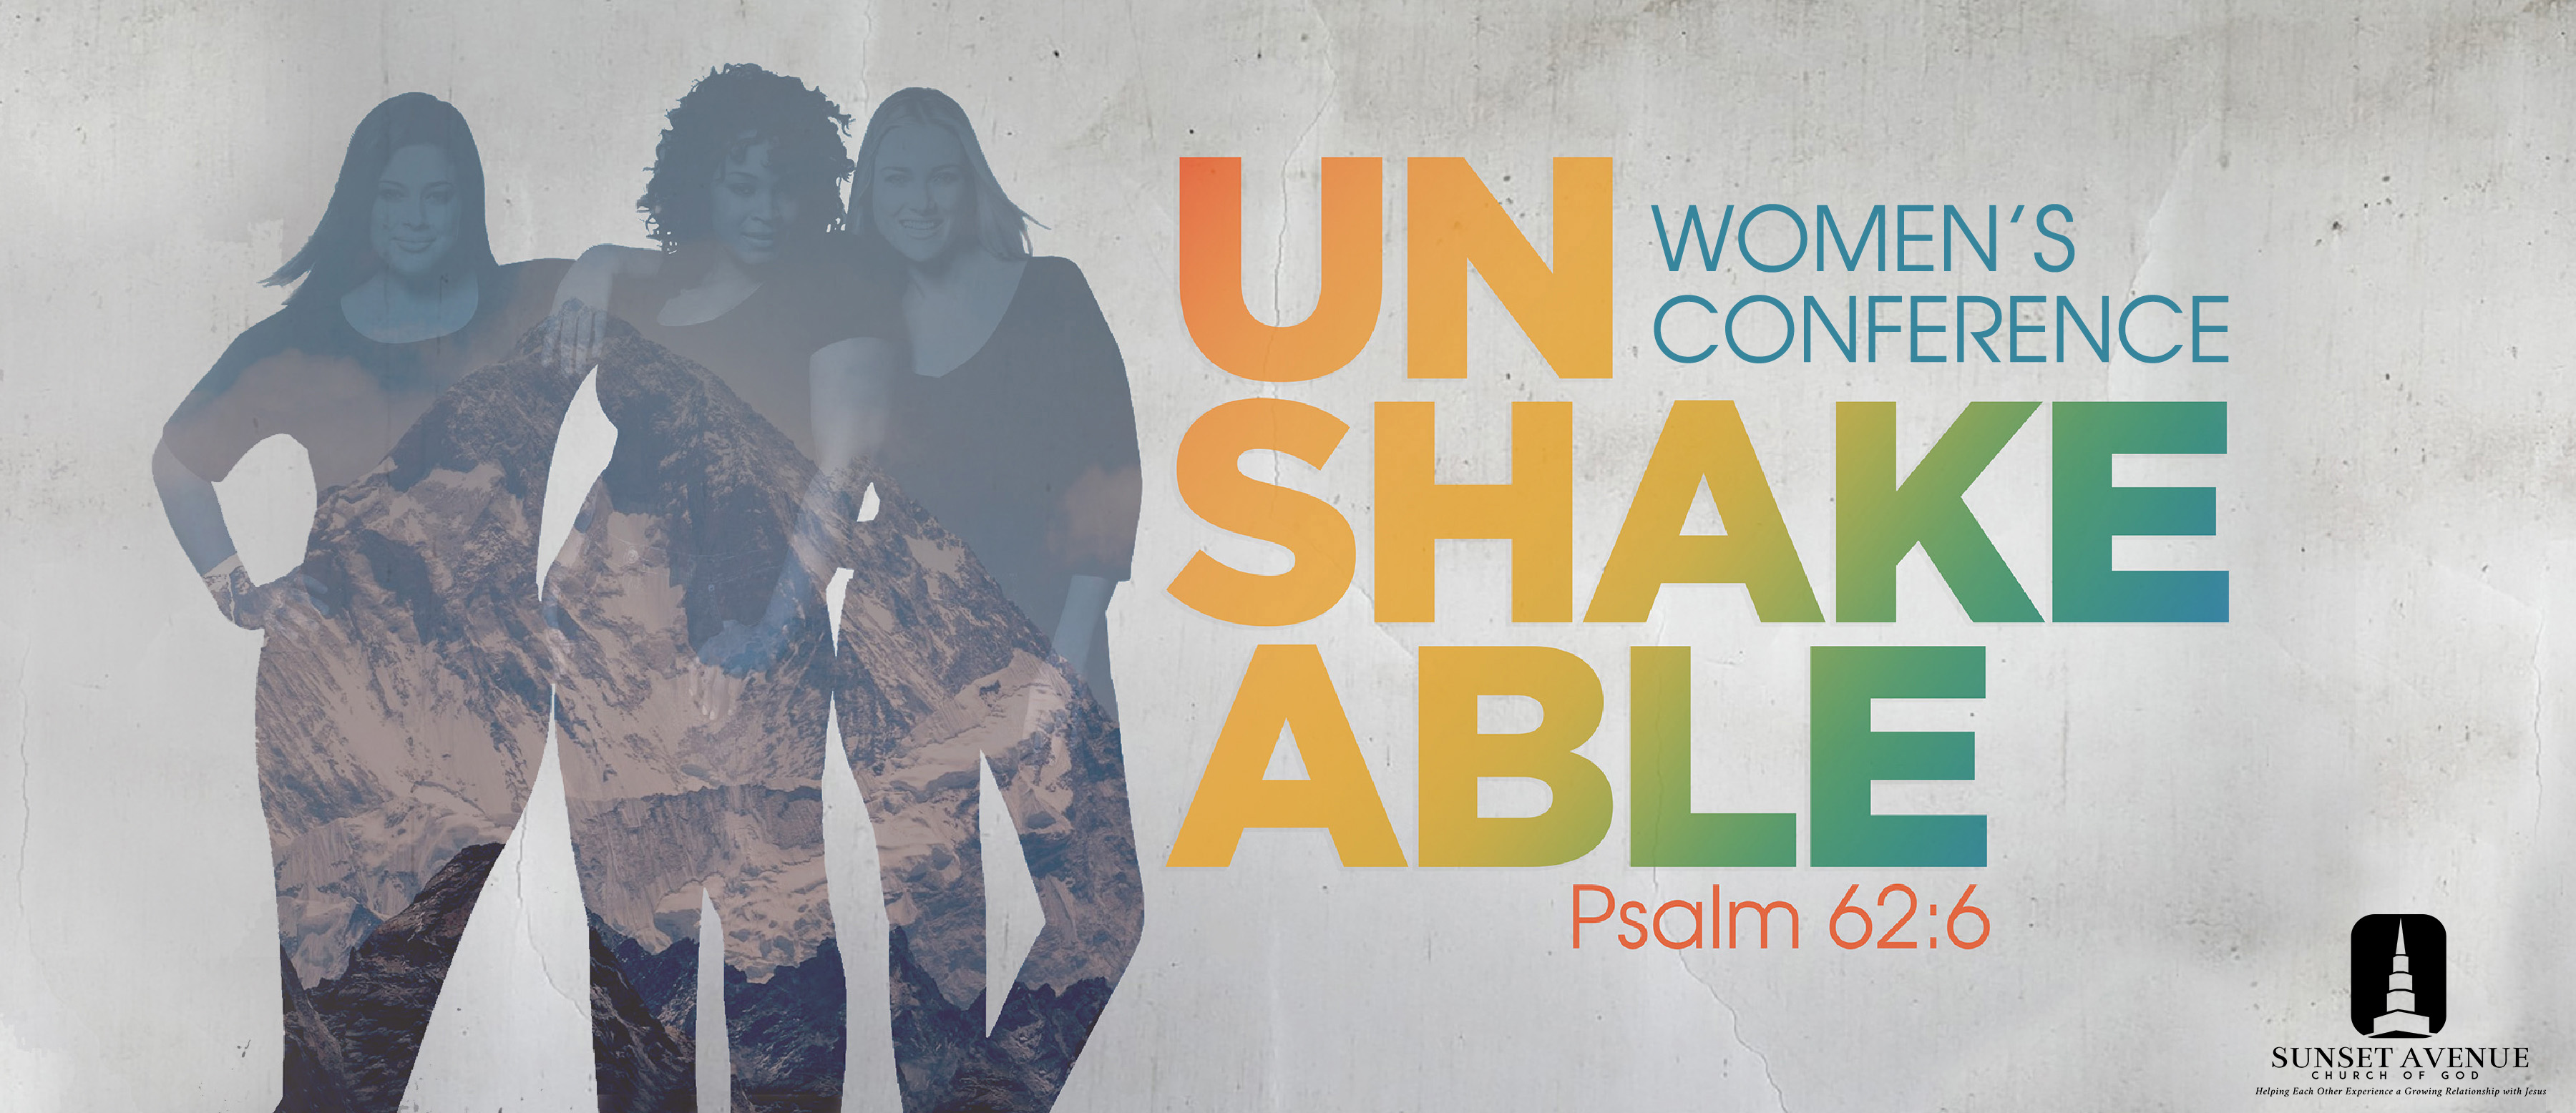 Unshakeable Women's Conference logo